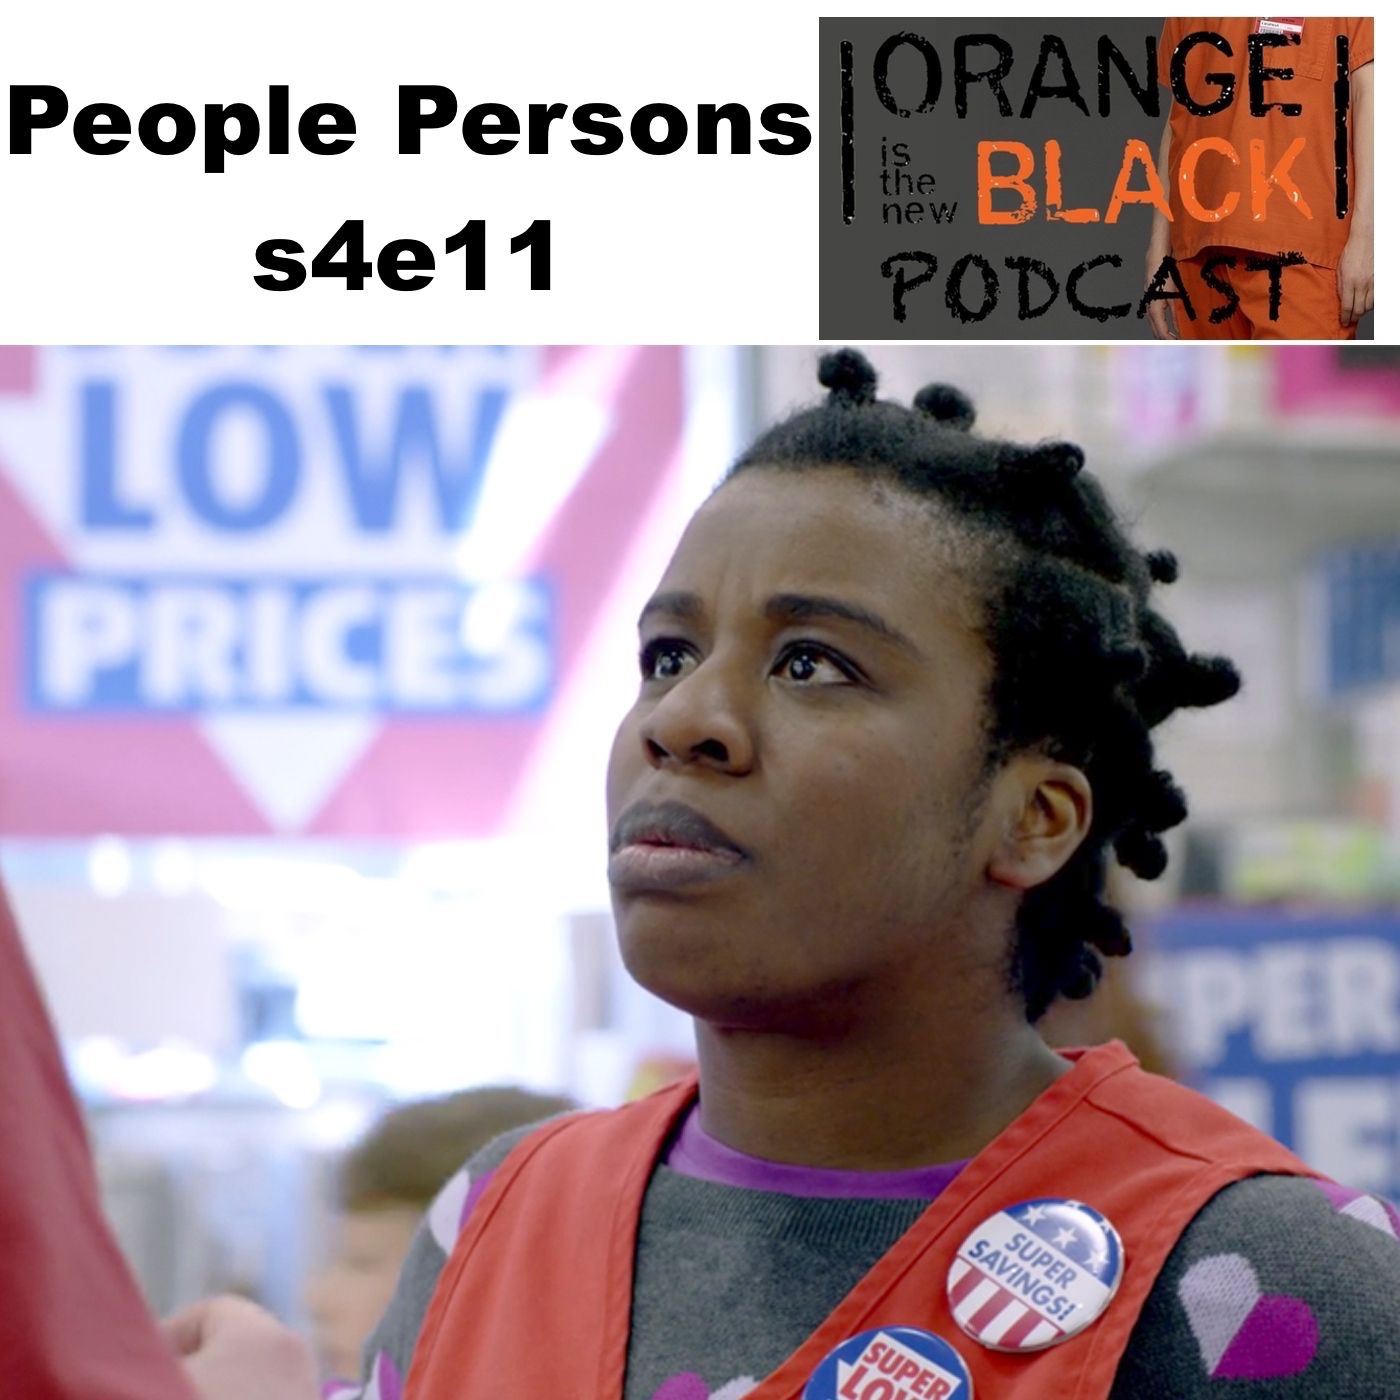 People Persons s4e11 - Orange is the New Black Podcast